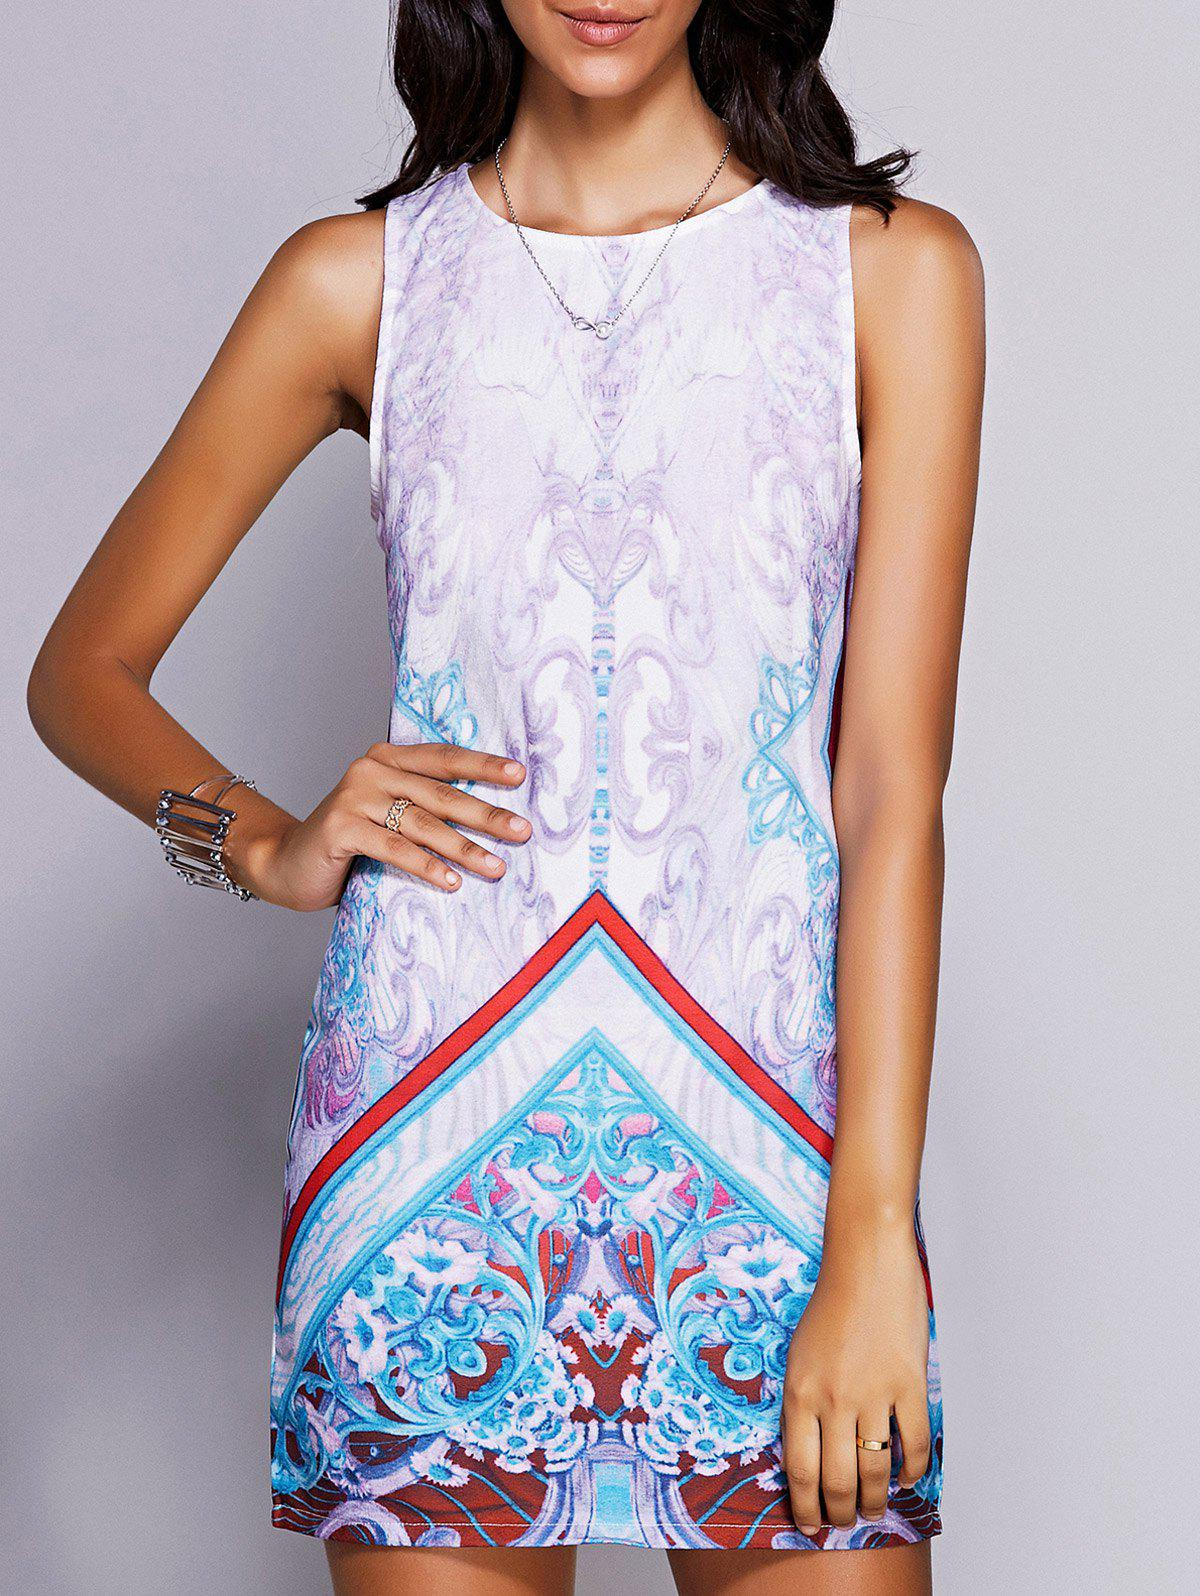 Stylish Women's Round Neck Sleeveless Print Mini Dress - BLUE L